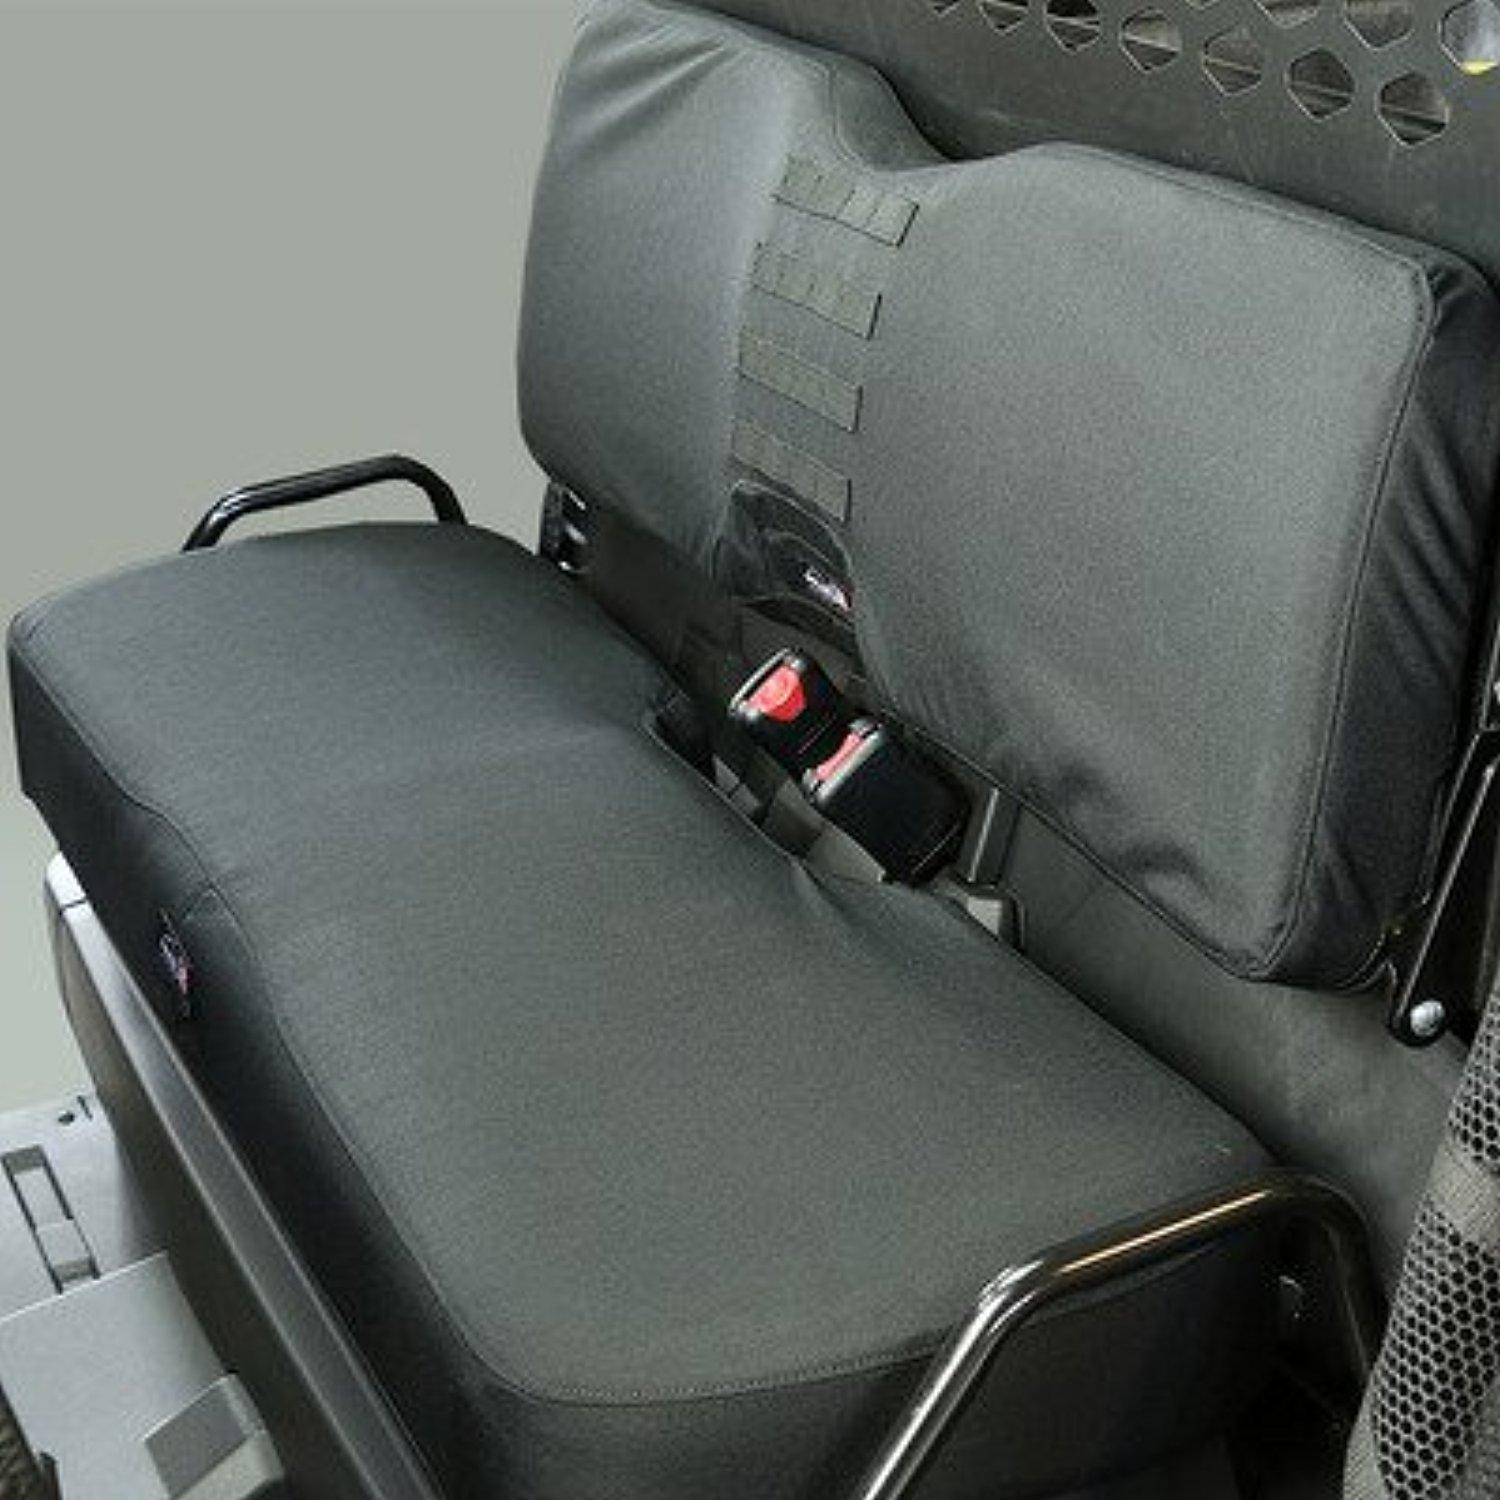 John Deere Seat Covers For Trucks : John deere gator seat covers black velcromag